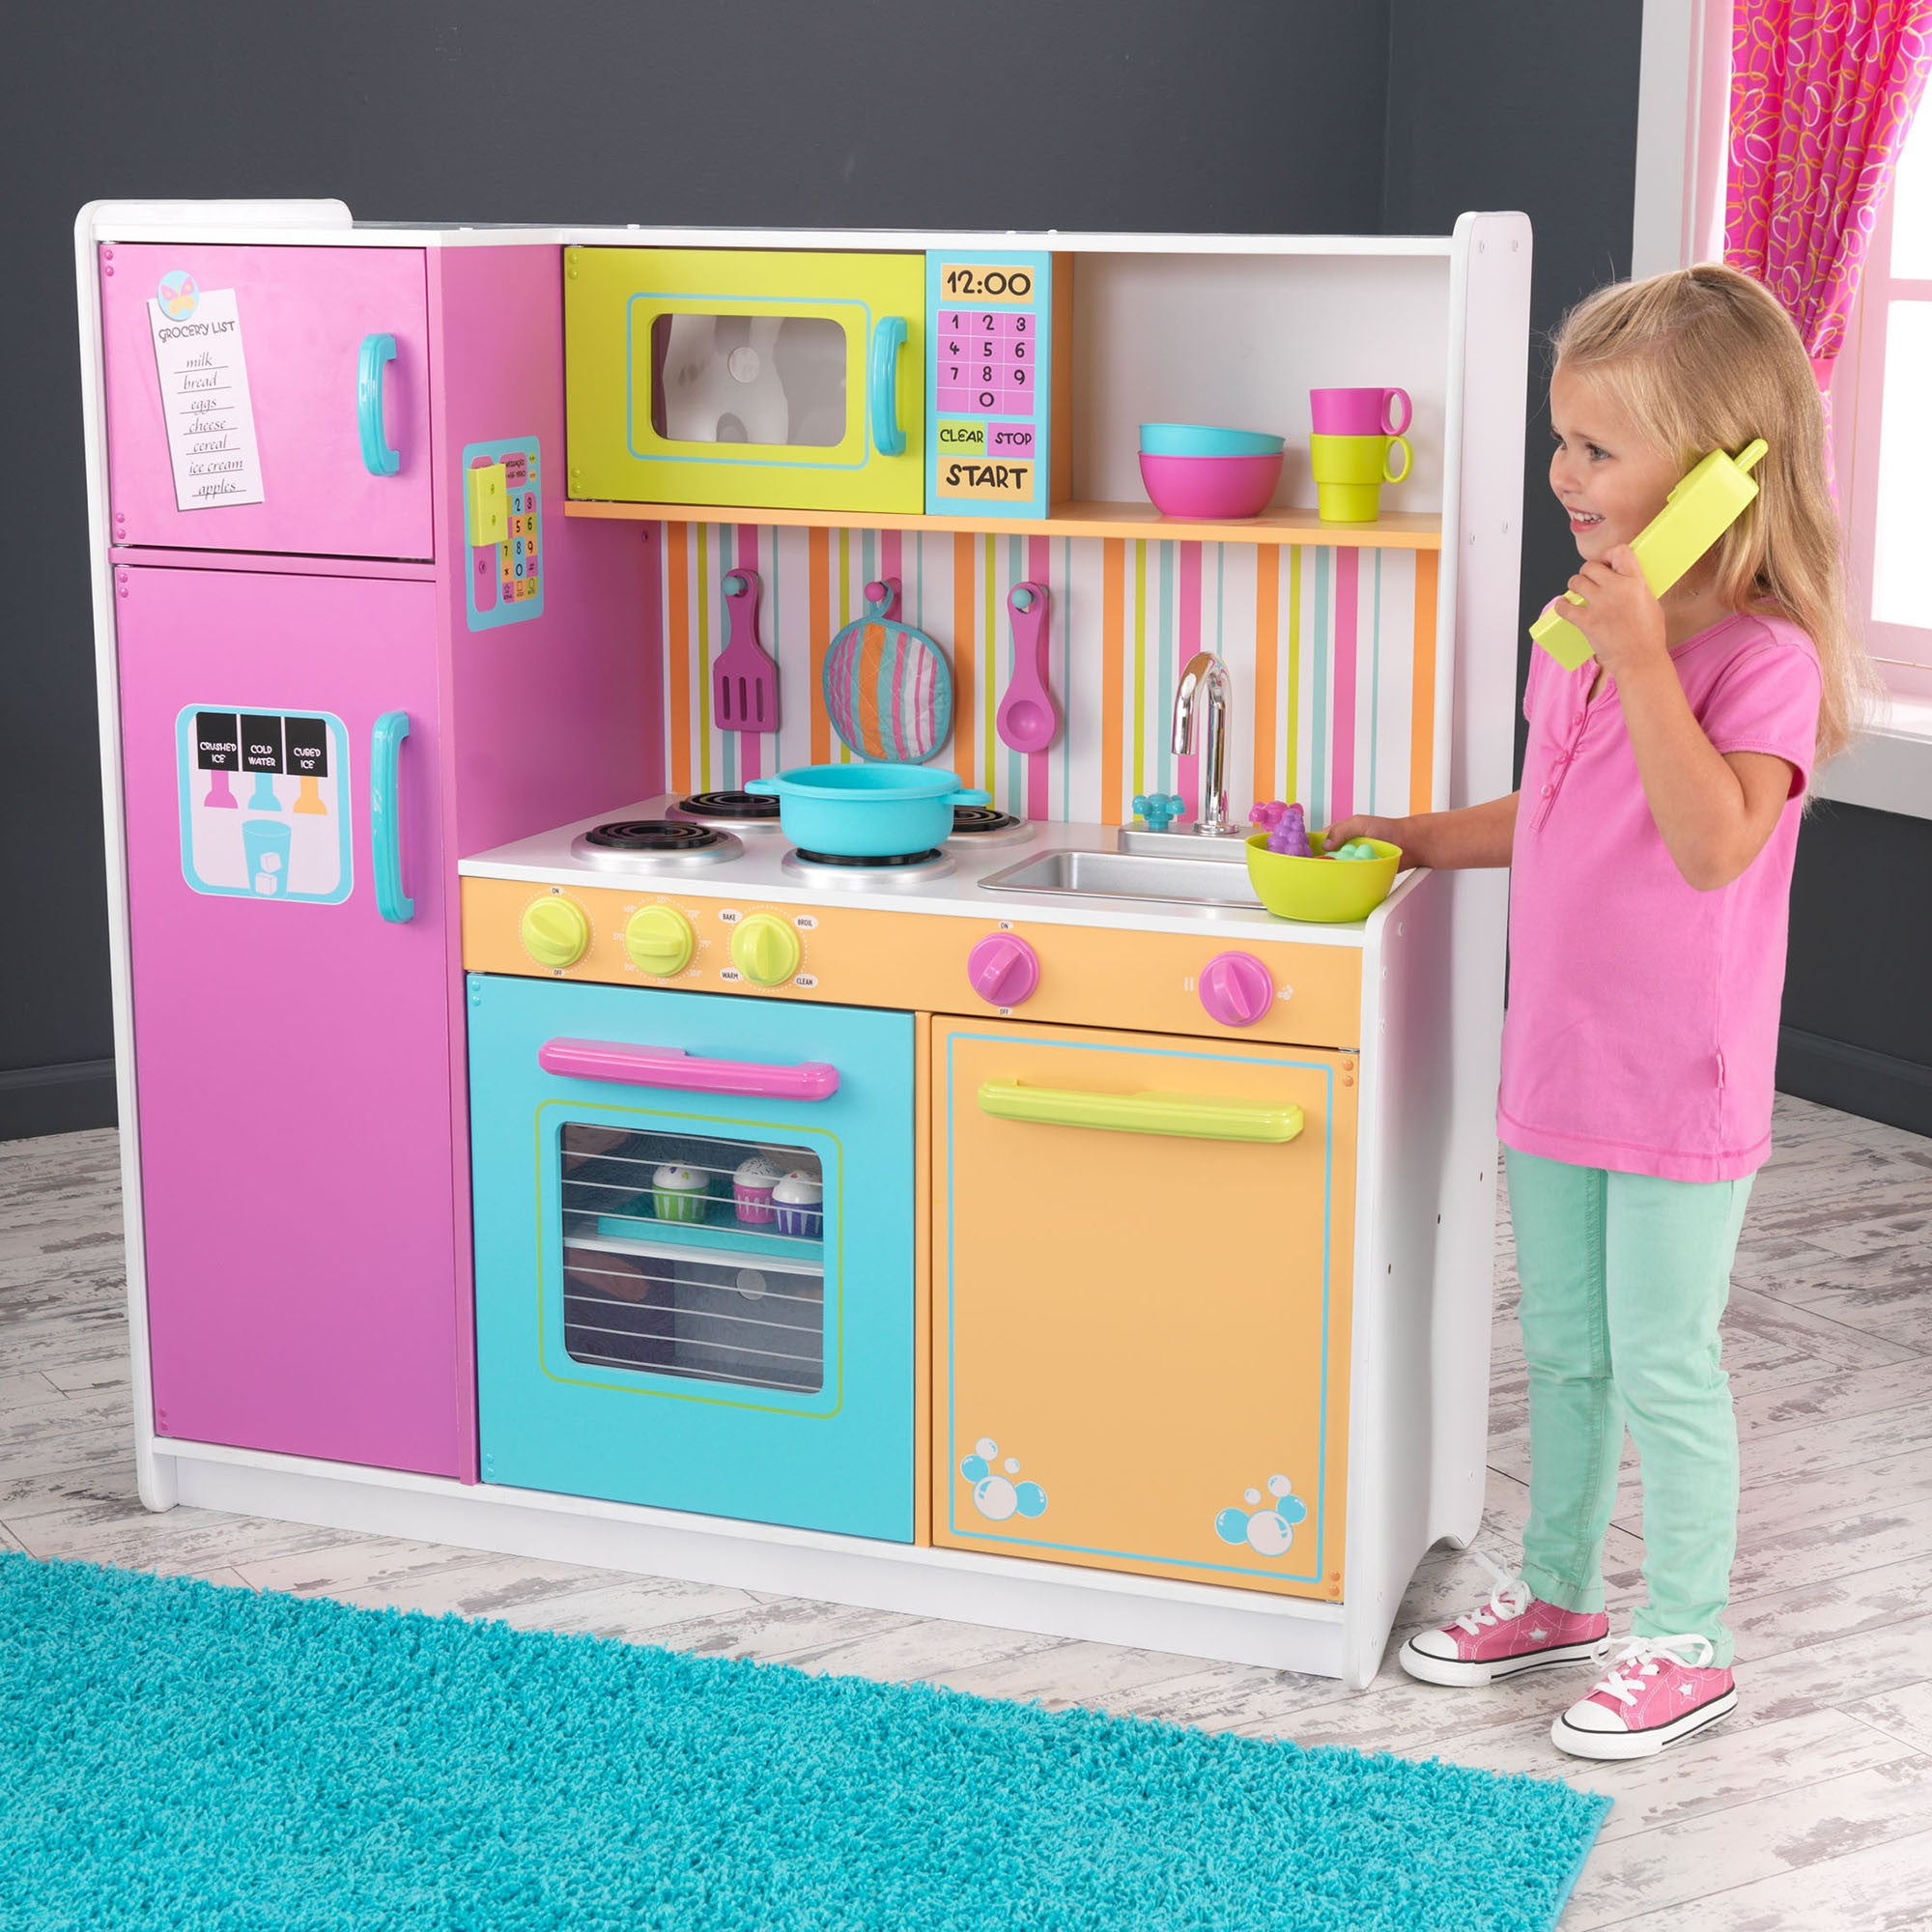 Kidkraft Big and Bright Kitchen for Kids Kidkraft Toy Kitchens & Play Food at Little Earth Nest Eco Shop